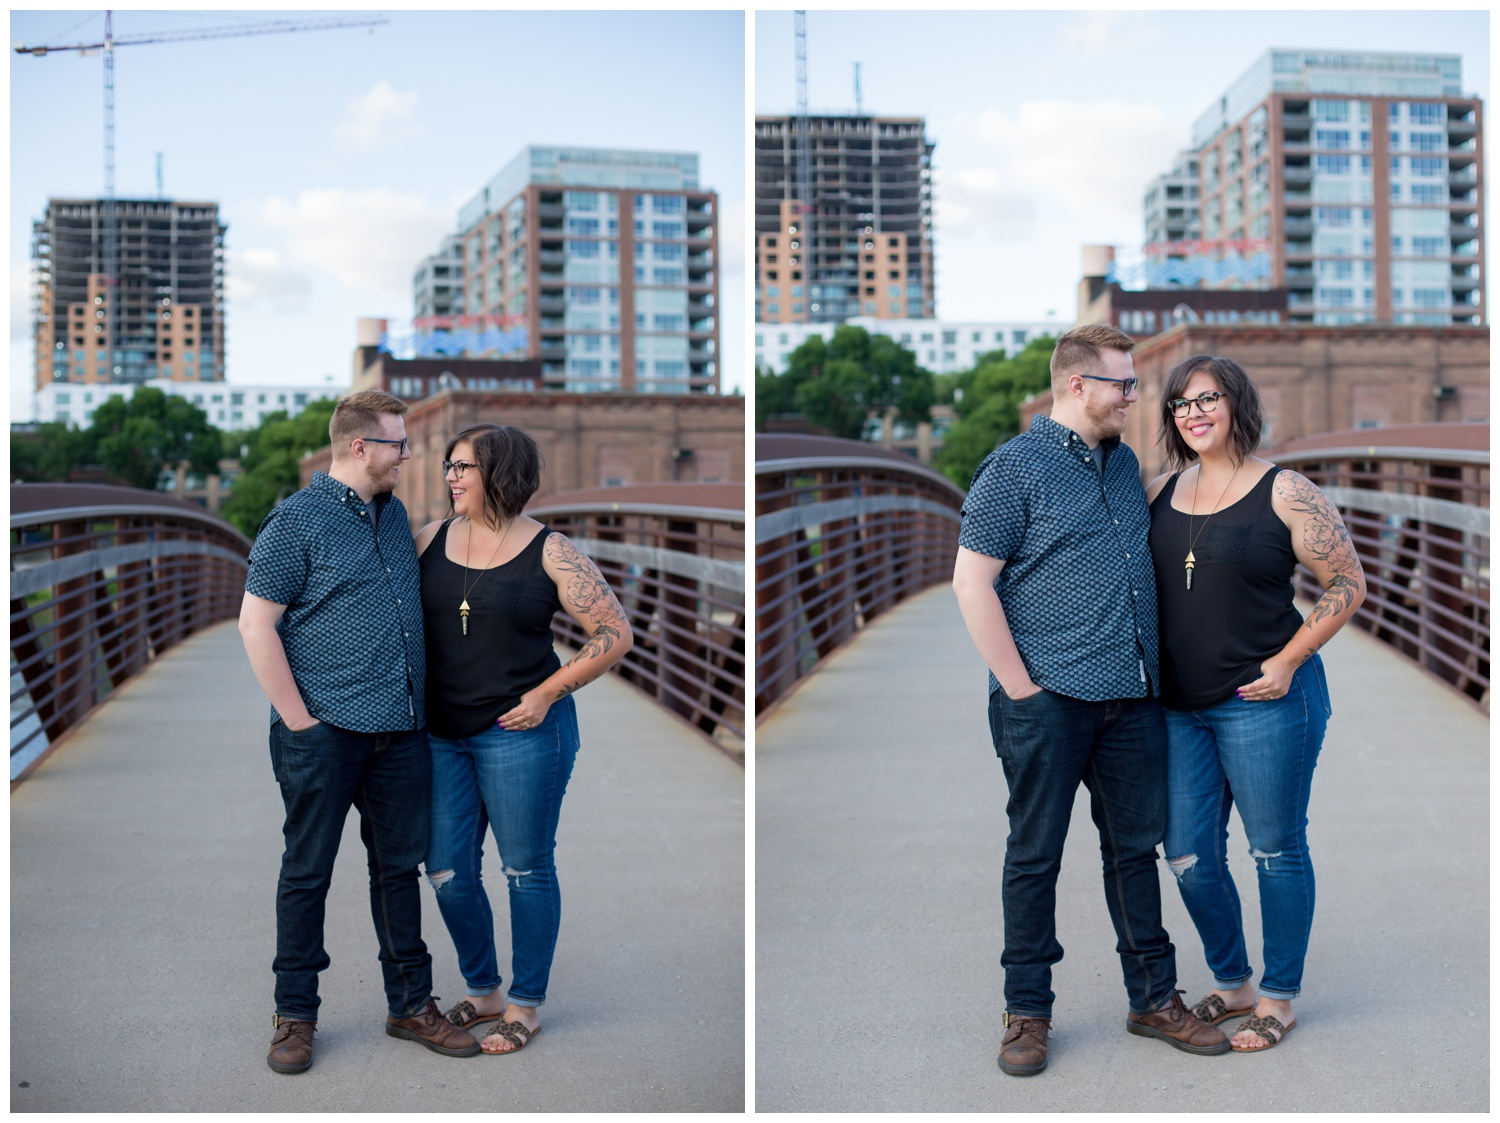 Kate-Alison-Photography-Caitlin-Tom-St-Paul-Couples-Session-6.jpg